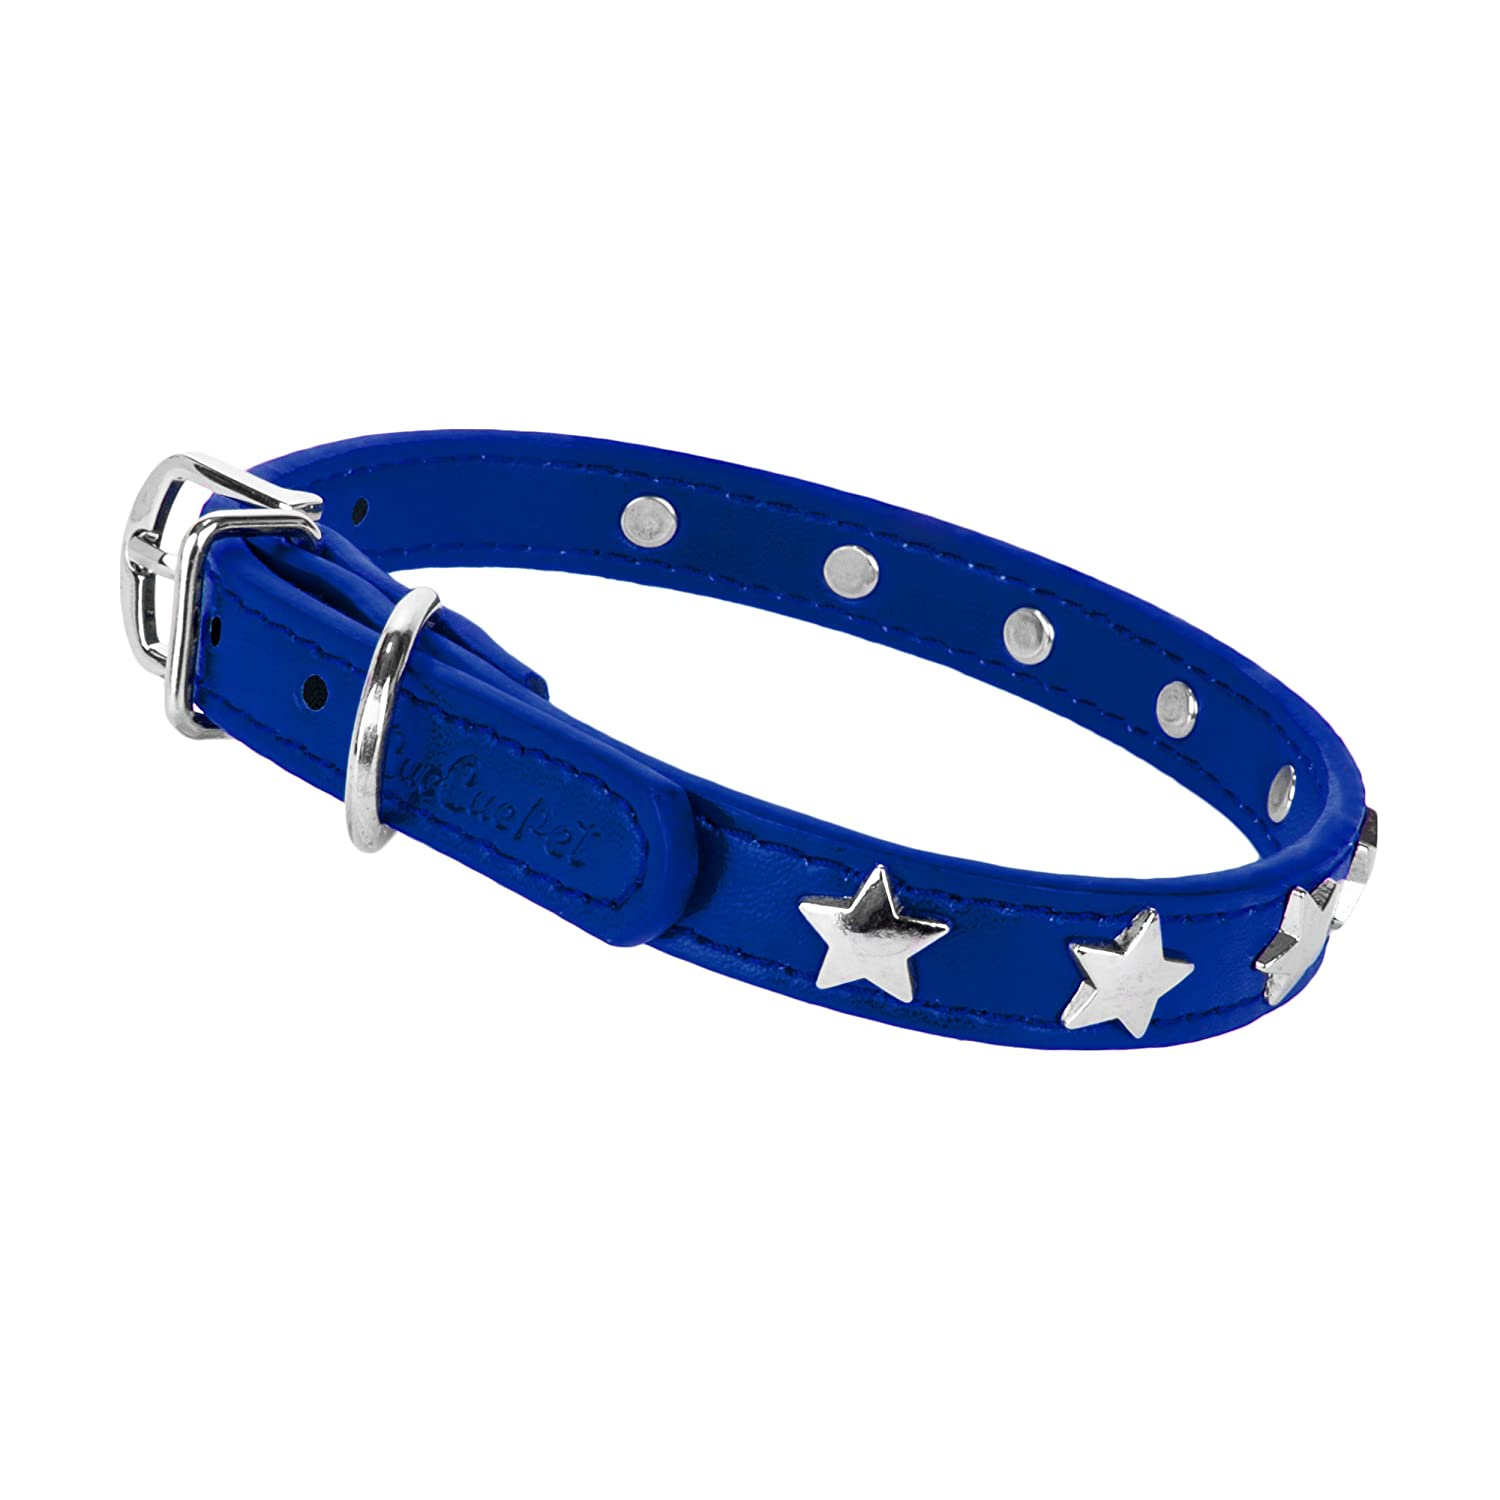 Cue Cue Pet Adjustable Dog Collar Many Sizes (Extra Large, bluee) by CUE CUE Pet